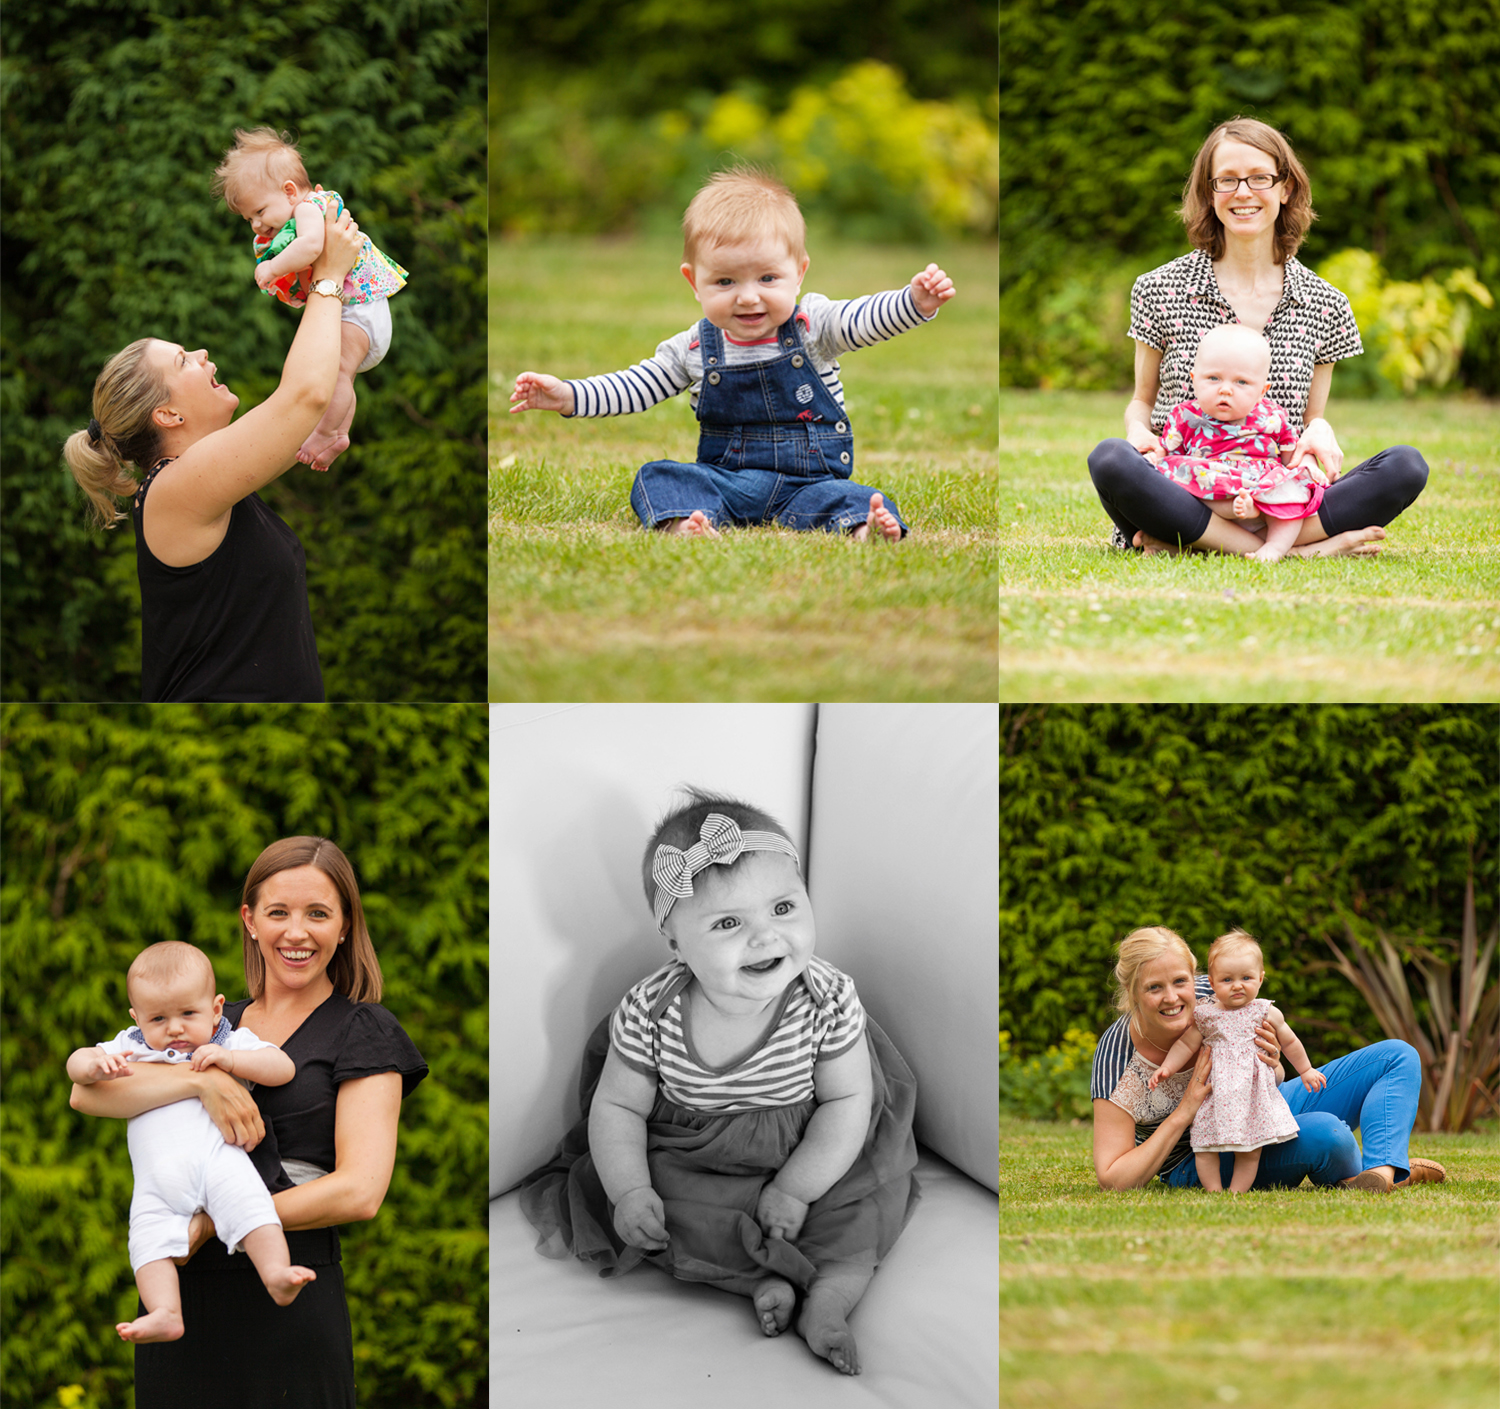 The gorgeous mums and bubbas from a recent Berhamsted NCT group photoshoot